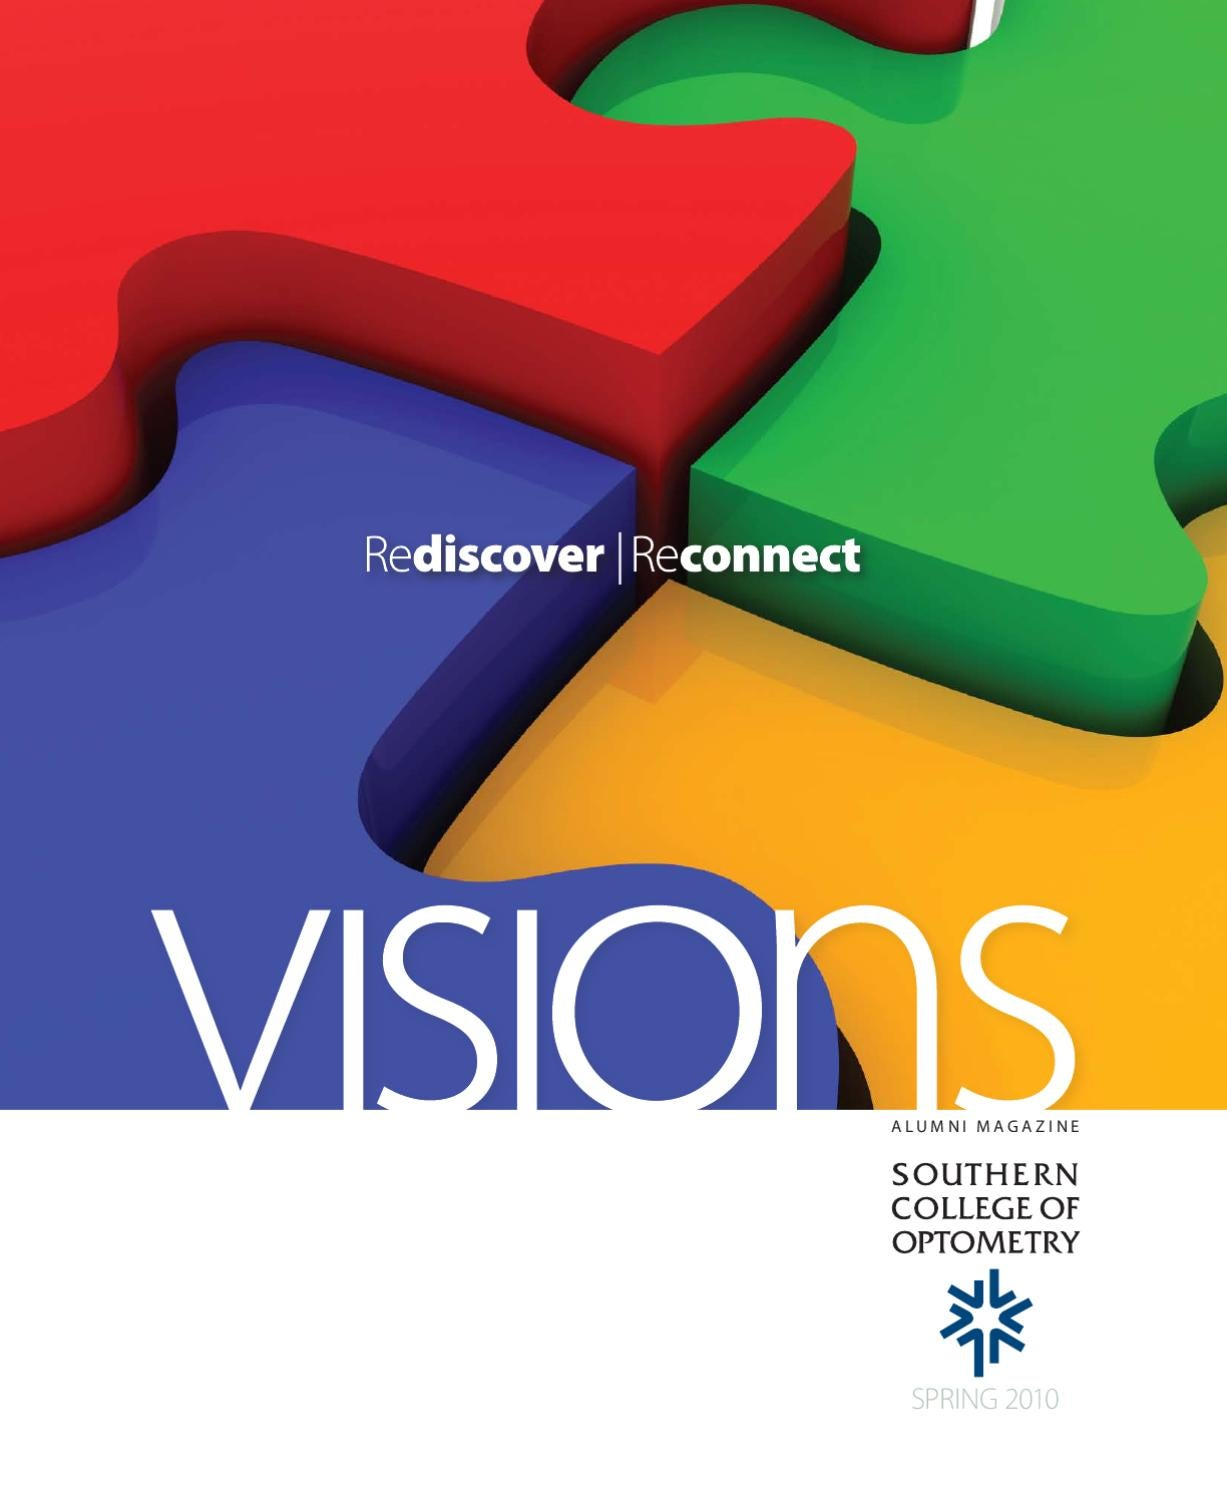 visions_spring2010 by southern college of optometry - issuu